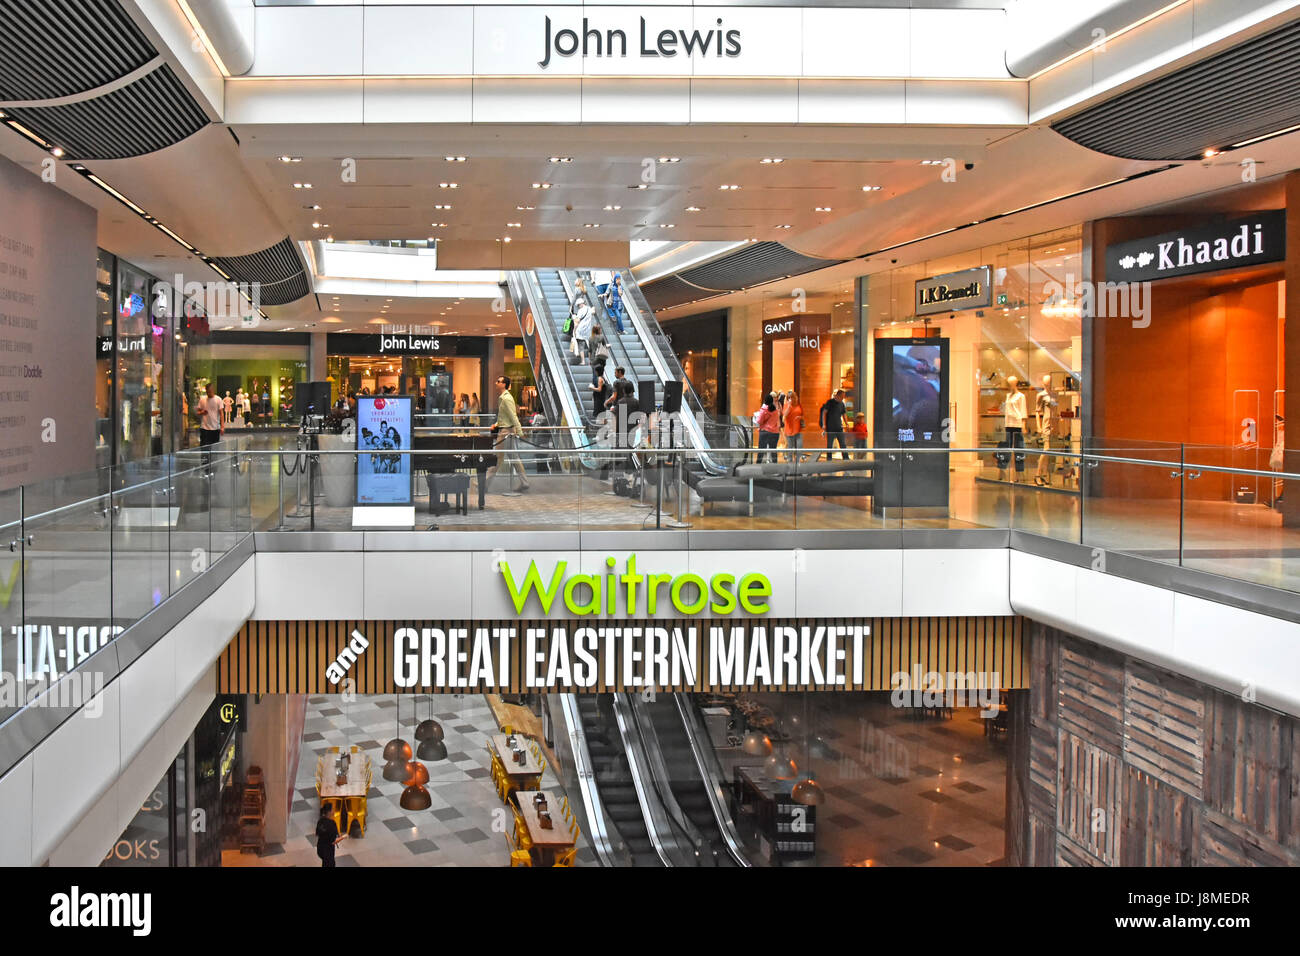 77288d299d Interior Westfield shopping centre Stratford City London UK mall with sign  for Waitrose supermarket & also Great Eastern Market & John Lewis sign